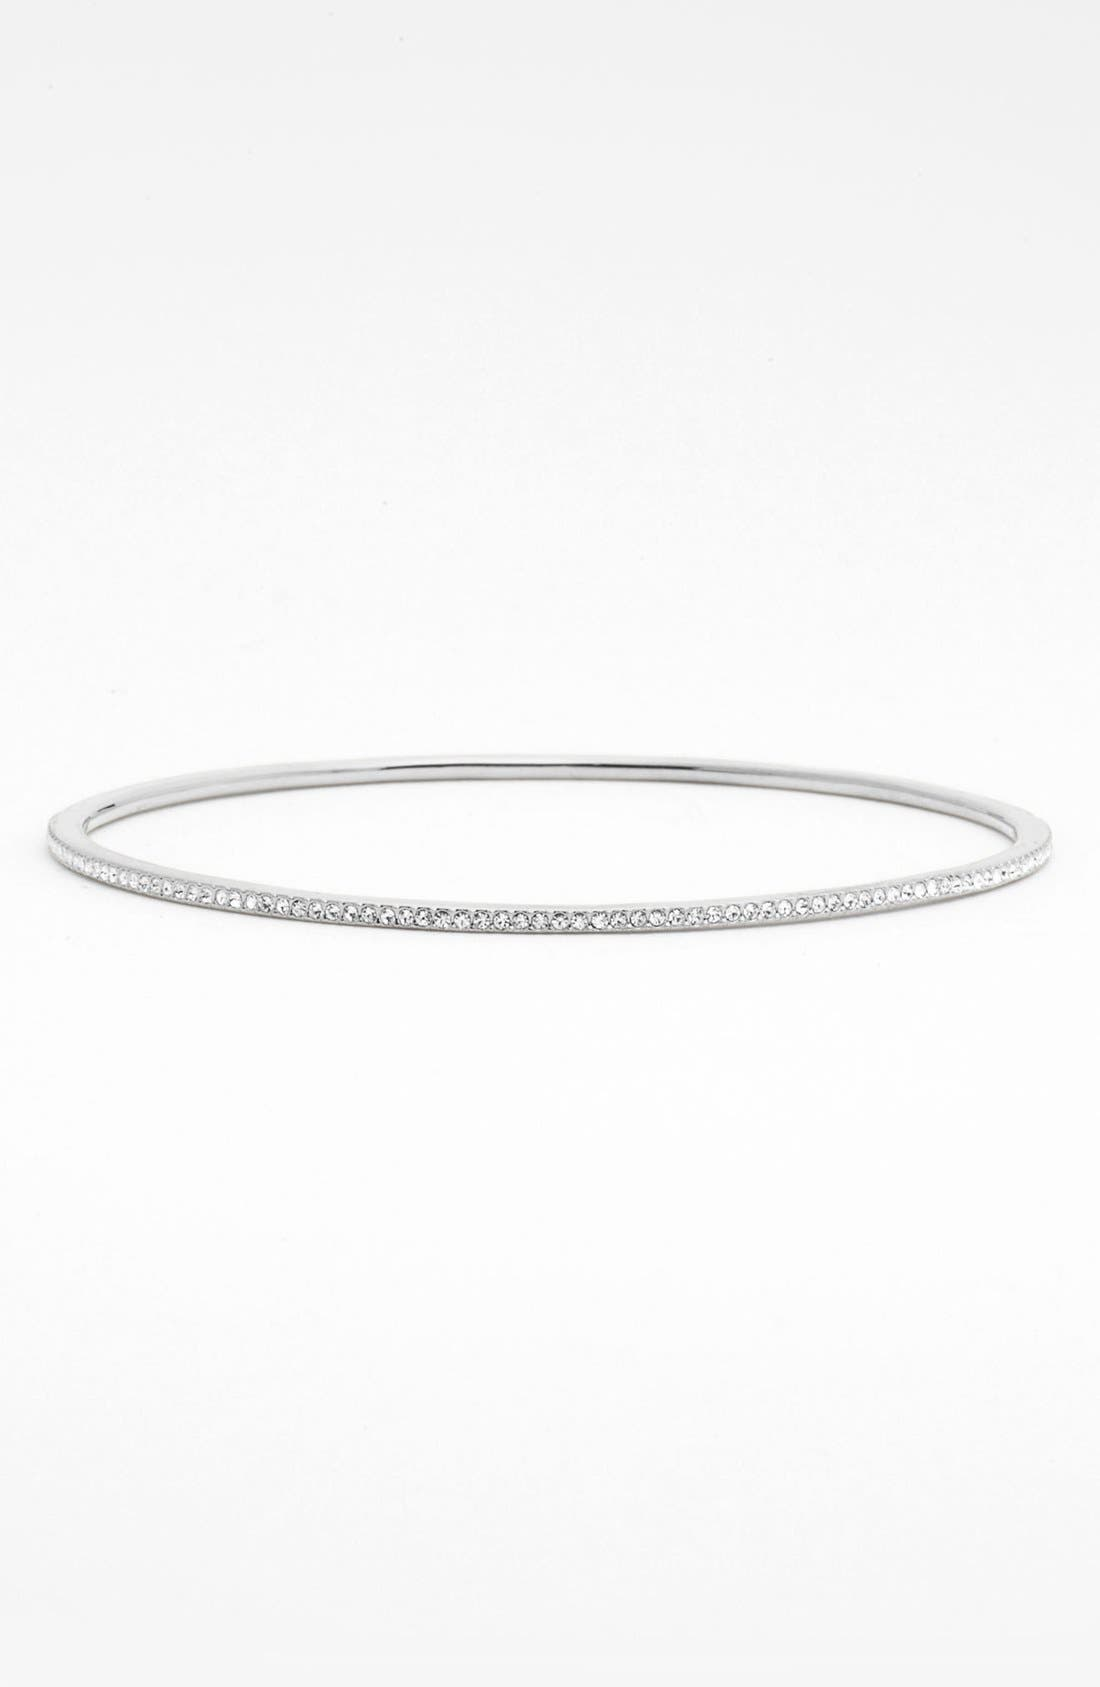 Alternate Image 1 Selected - Nadri Thin Prong Set Crystal Bangle